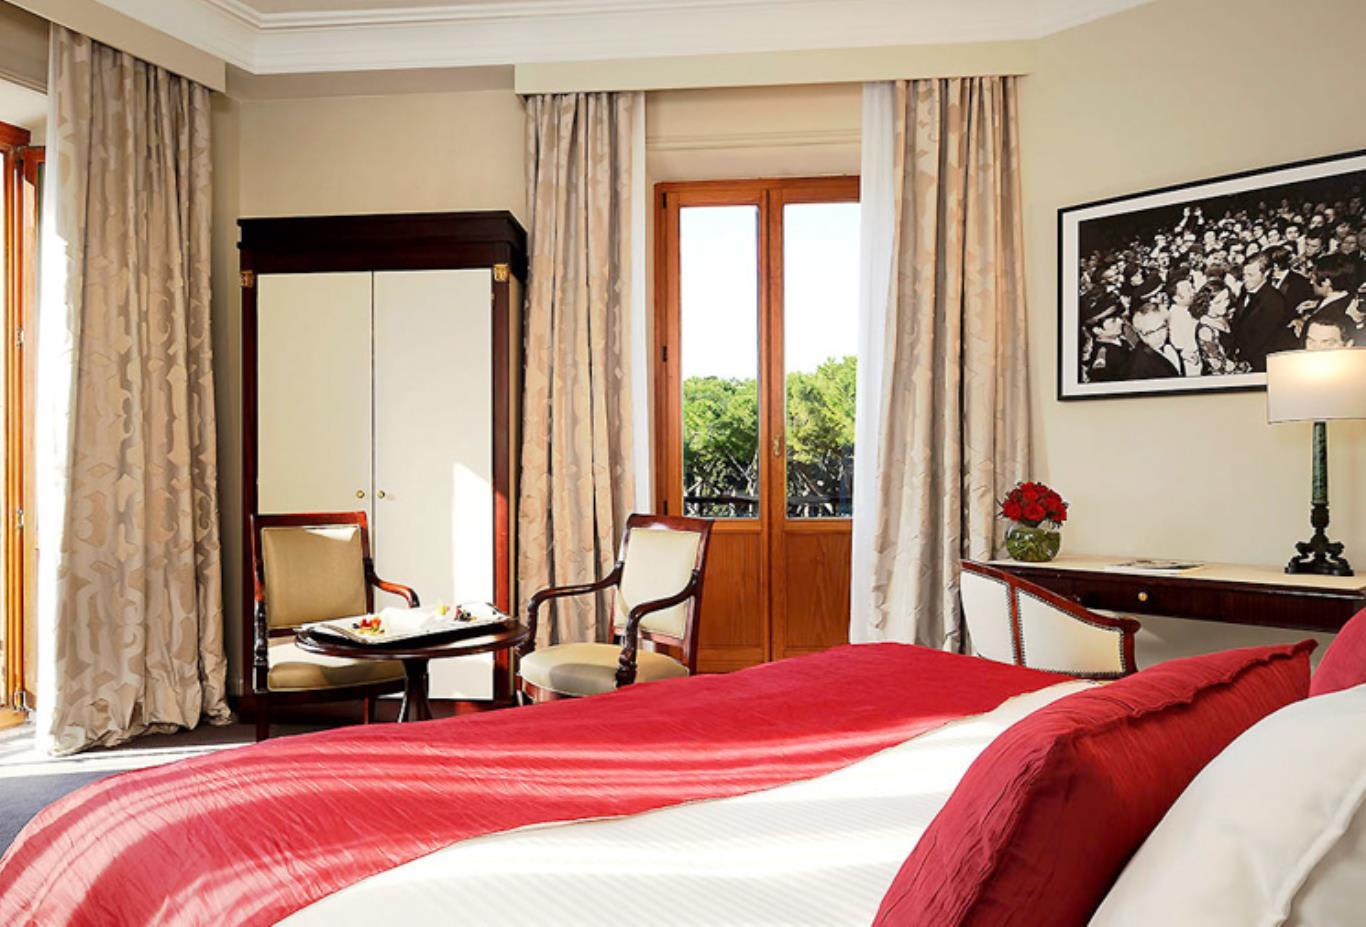 Luxury room double bed